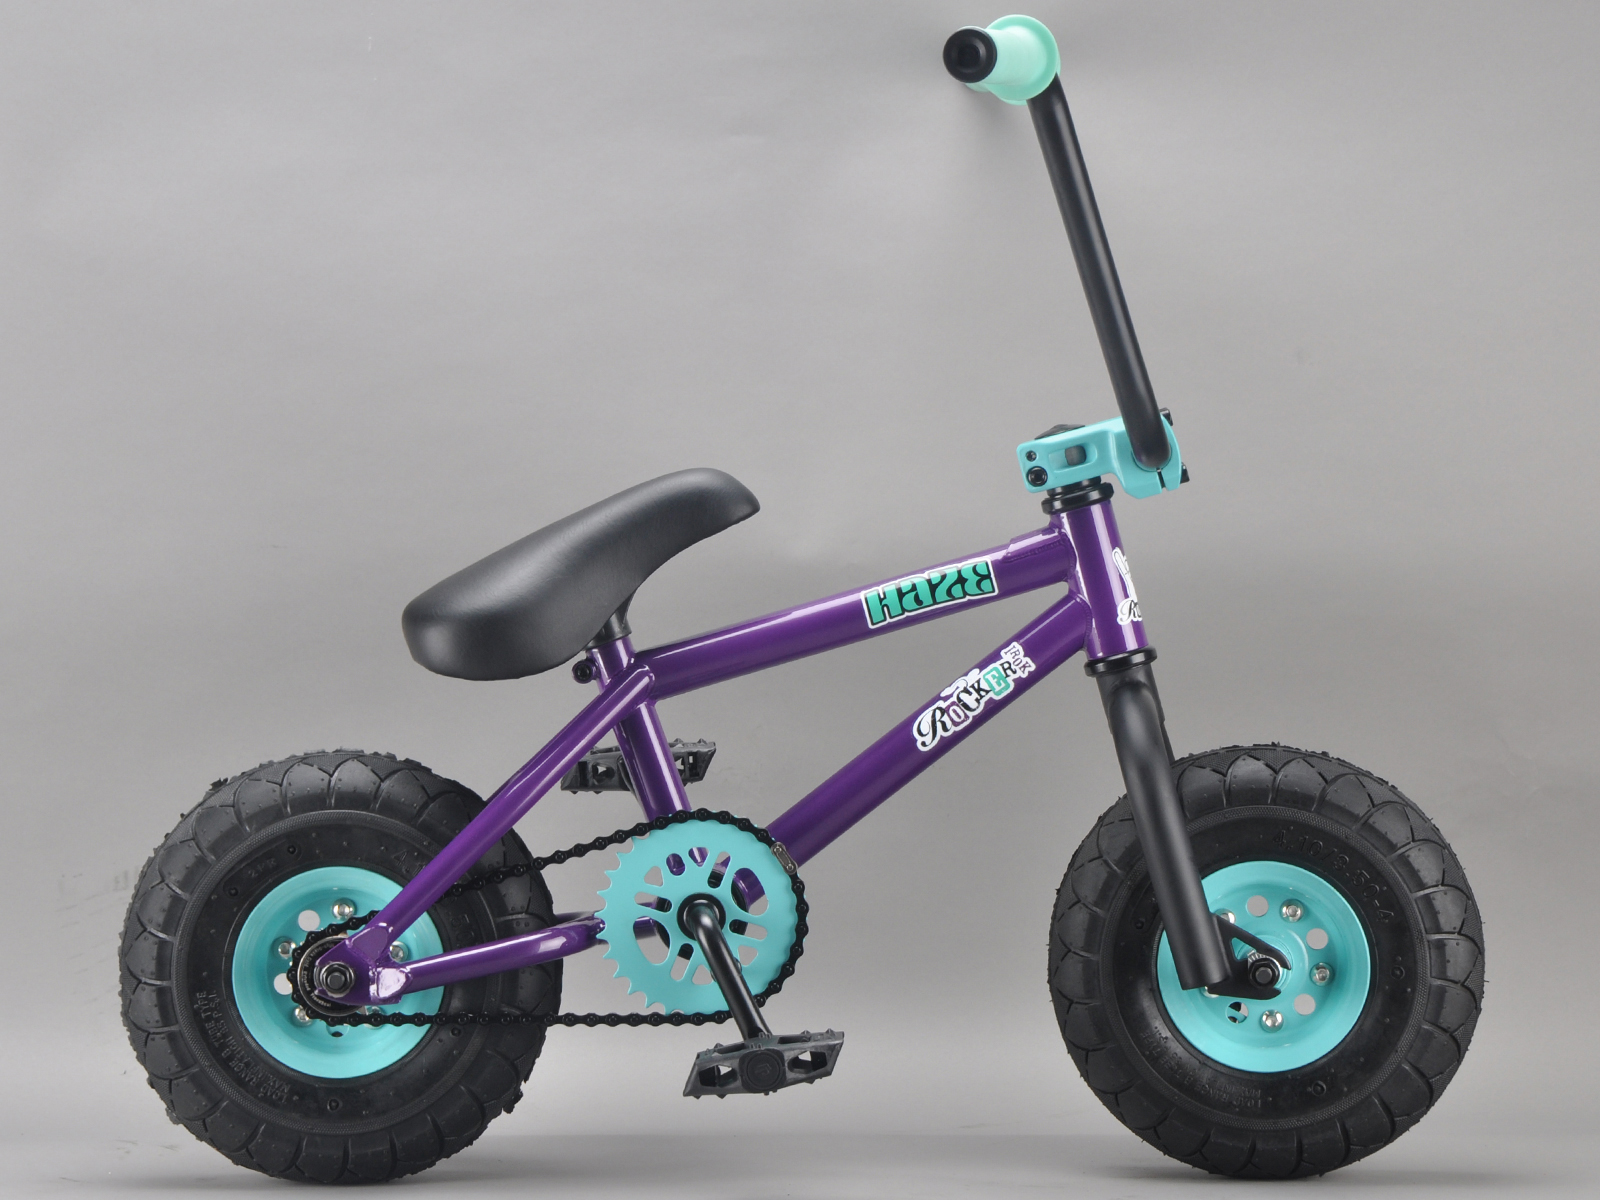 http://rockerbmx.com/images/stories/virtuemart/product/HAZEIROK2015%201.jpg